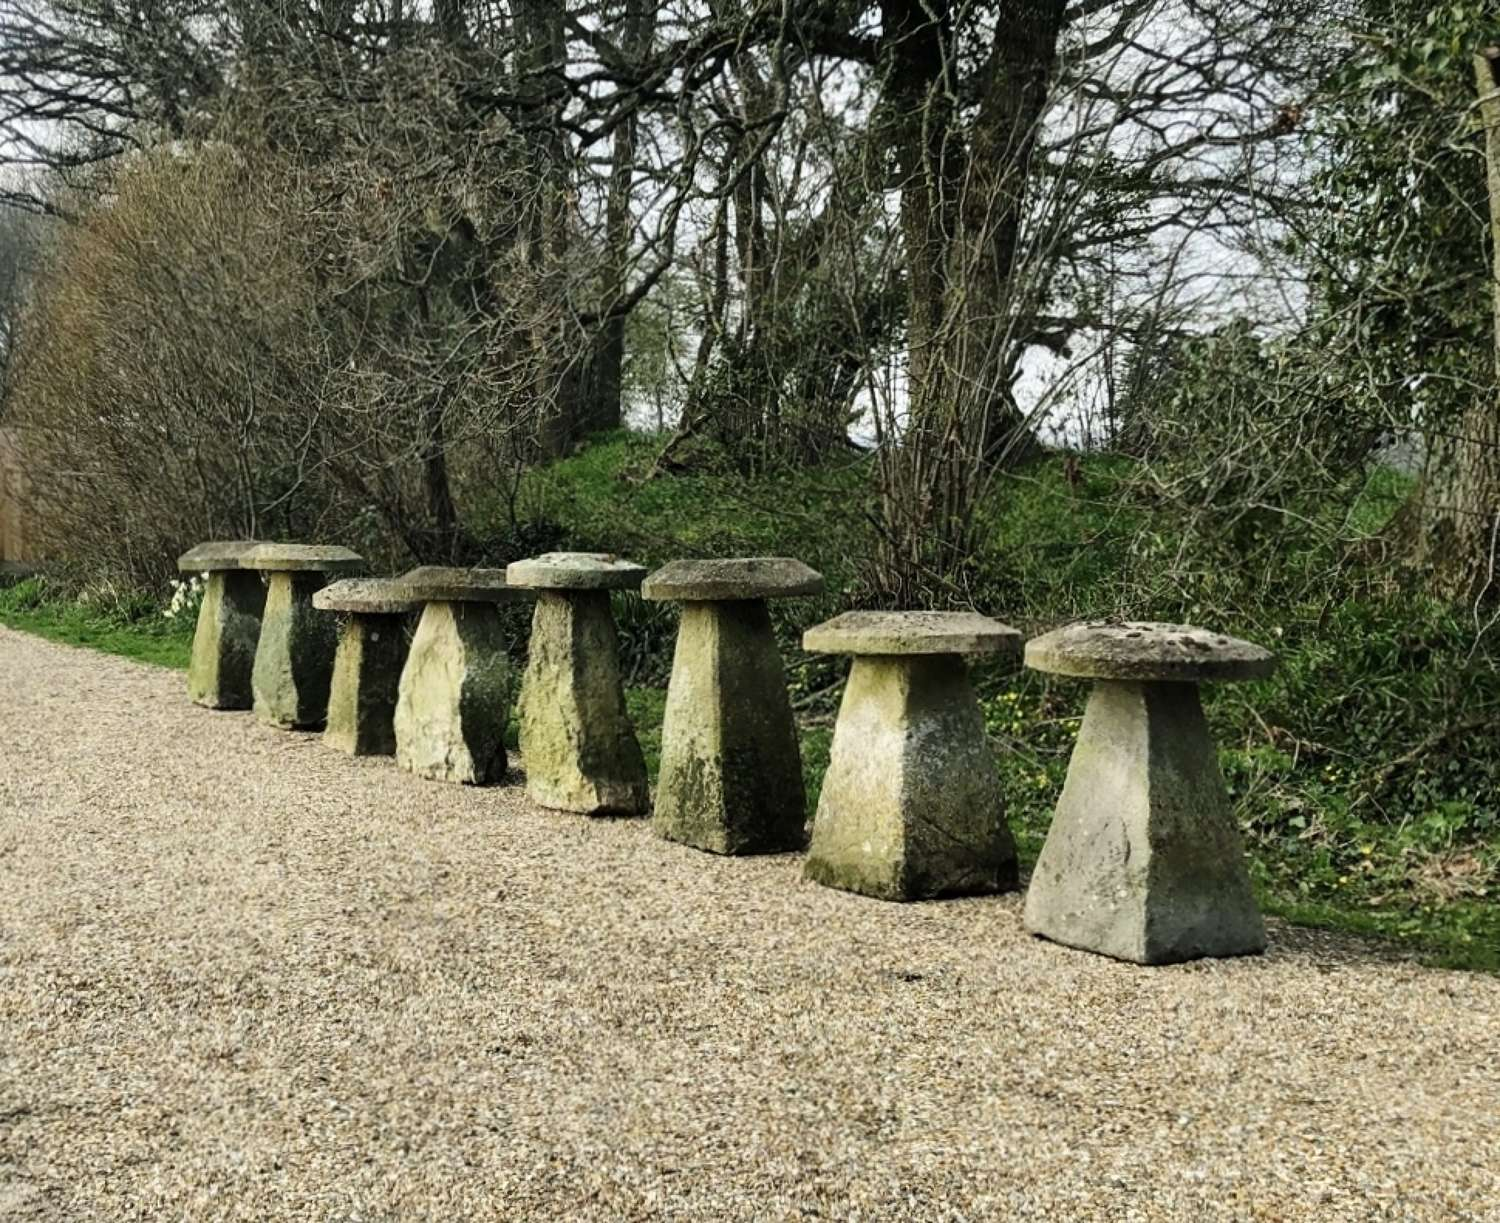 A Set of 8 Staddle Stones